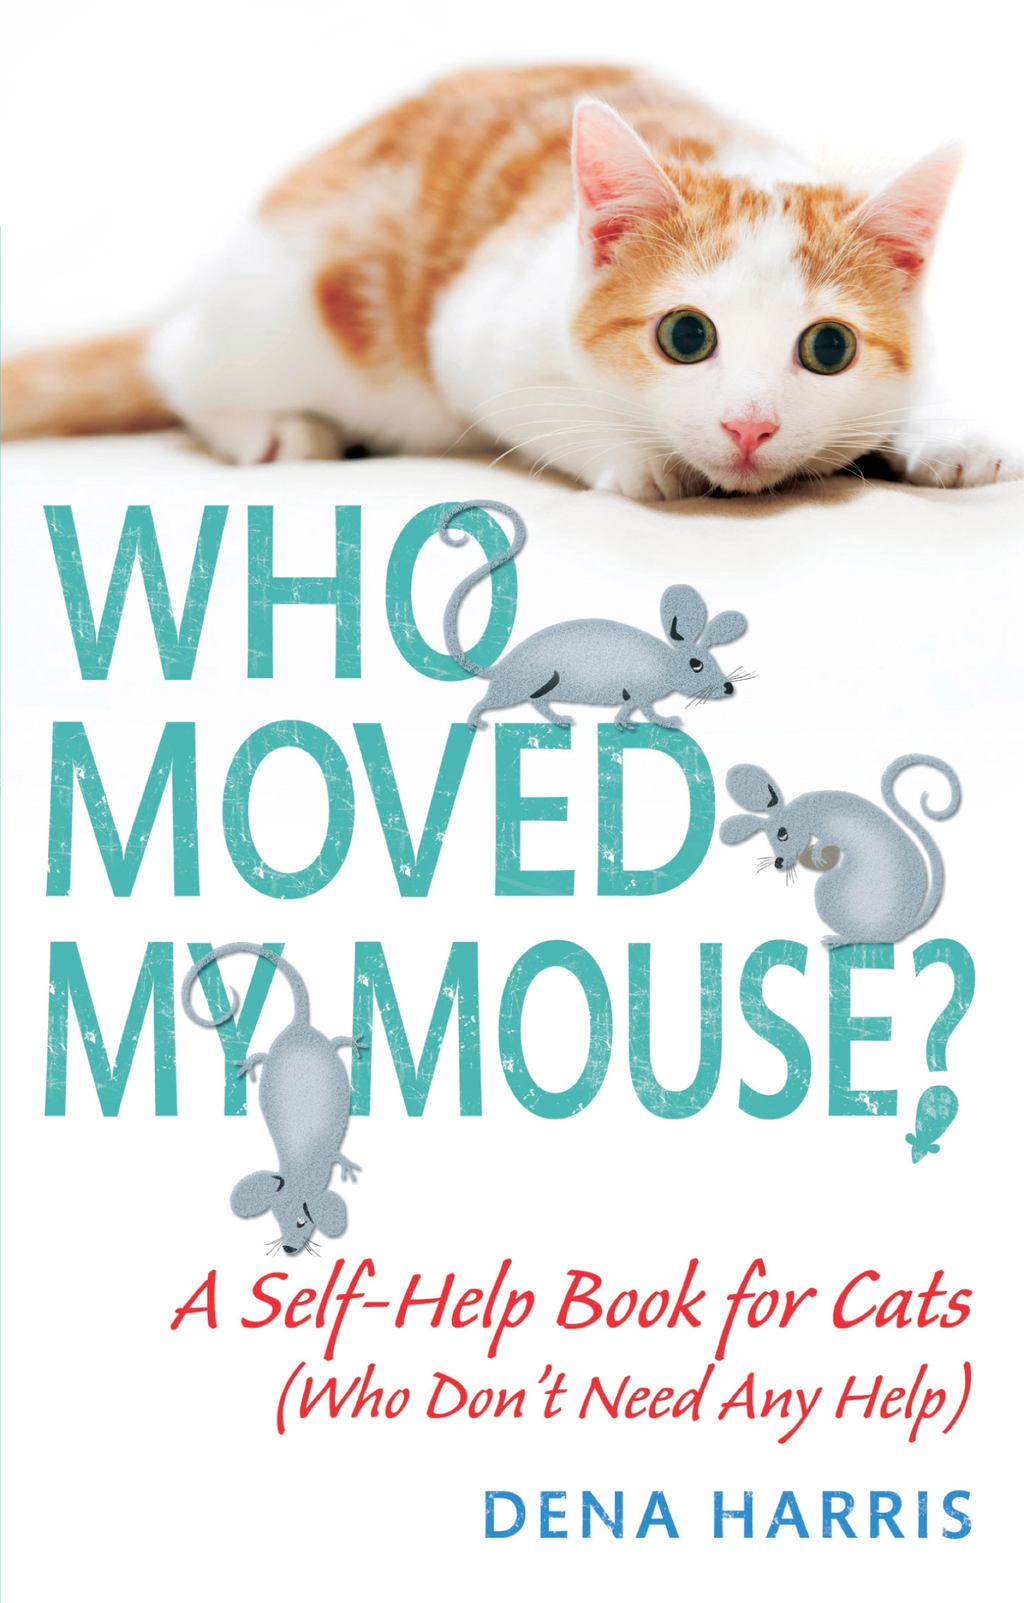 Who Moved My Mouse? A Self-Help Book for Cats (Who Don't Need Any Help)